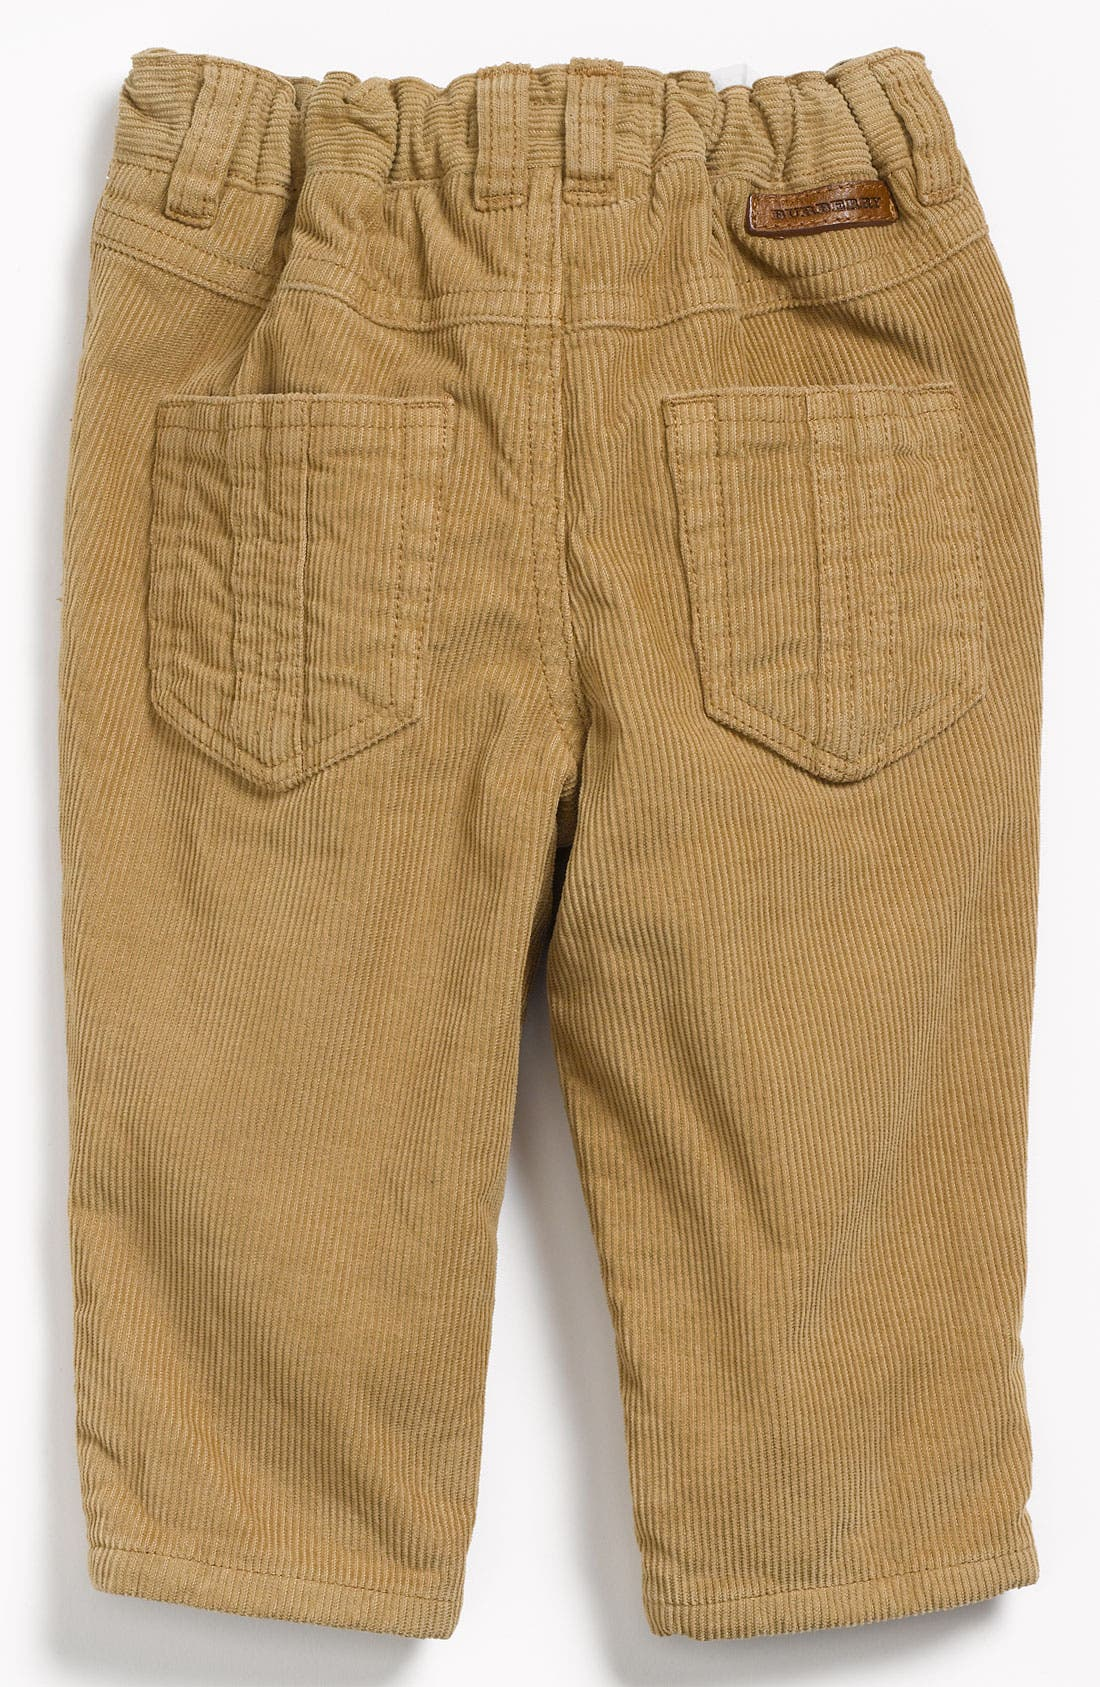 Alternate Image 1 Selected - Burberry Corduroy Trousers (Toddler)